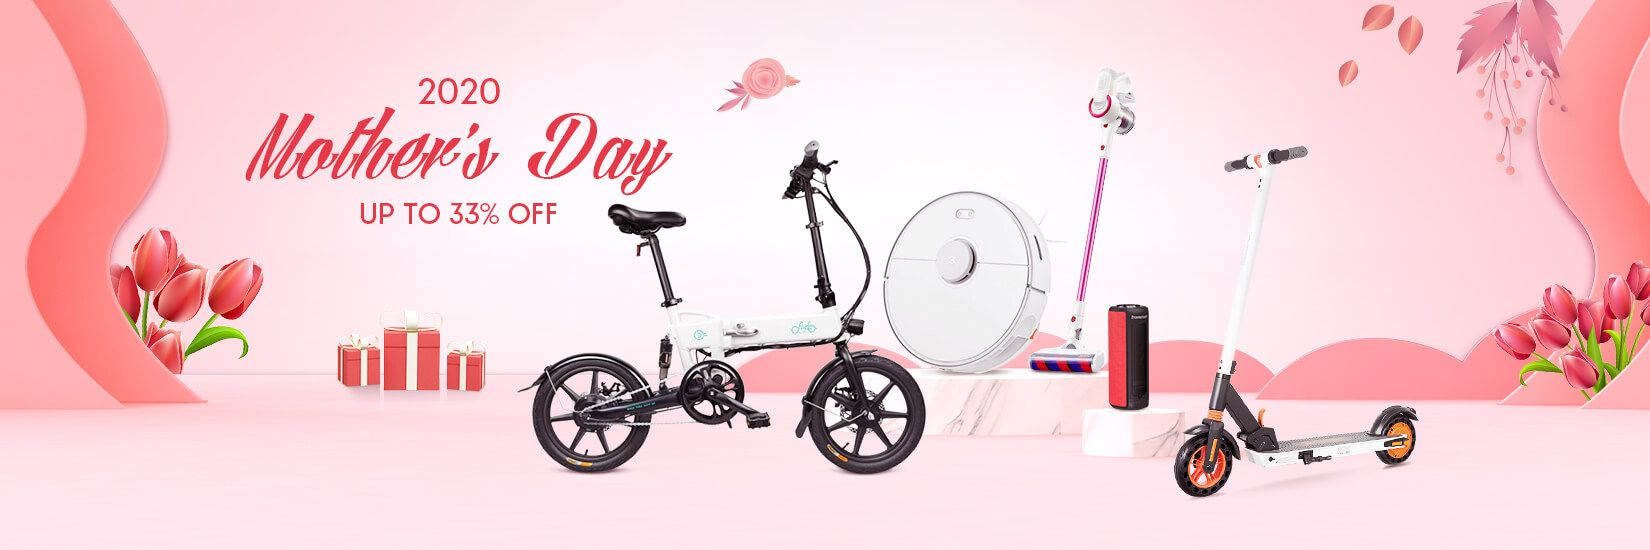 Mother's Day 2020 promotion - Geekbuying.pl - Home appliances UP TO 33% DISCOUNT